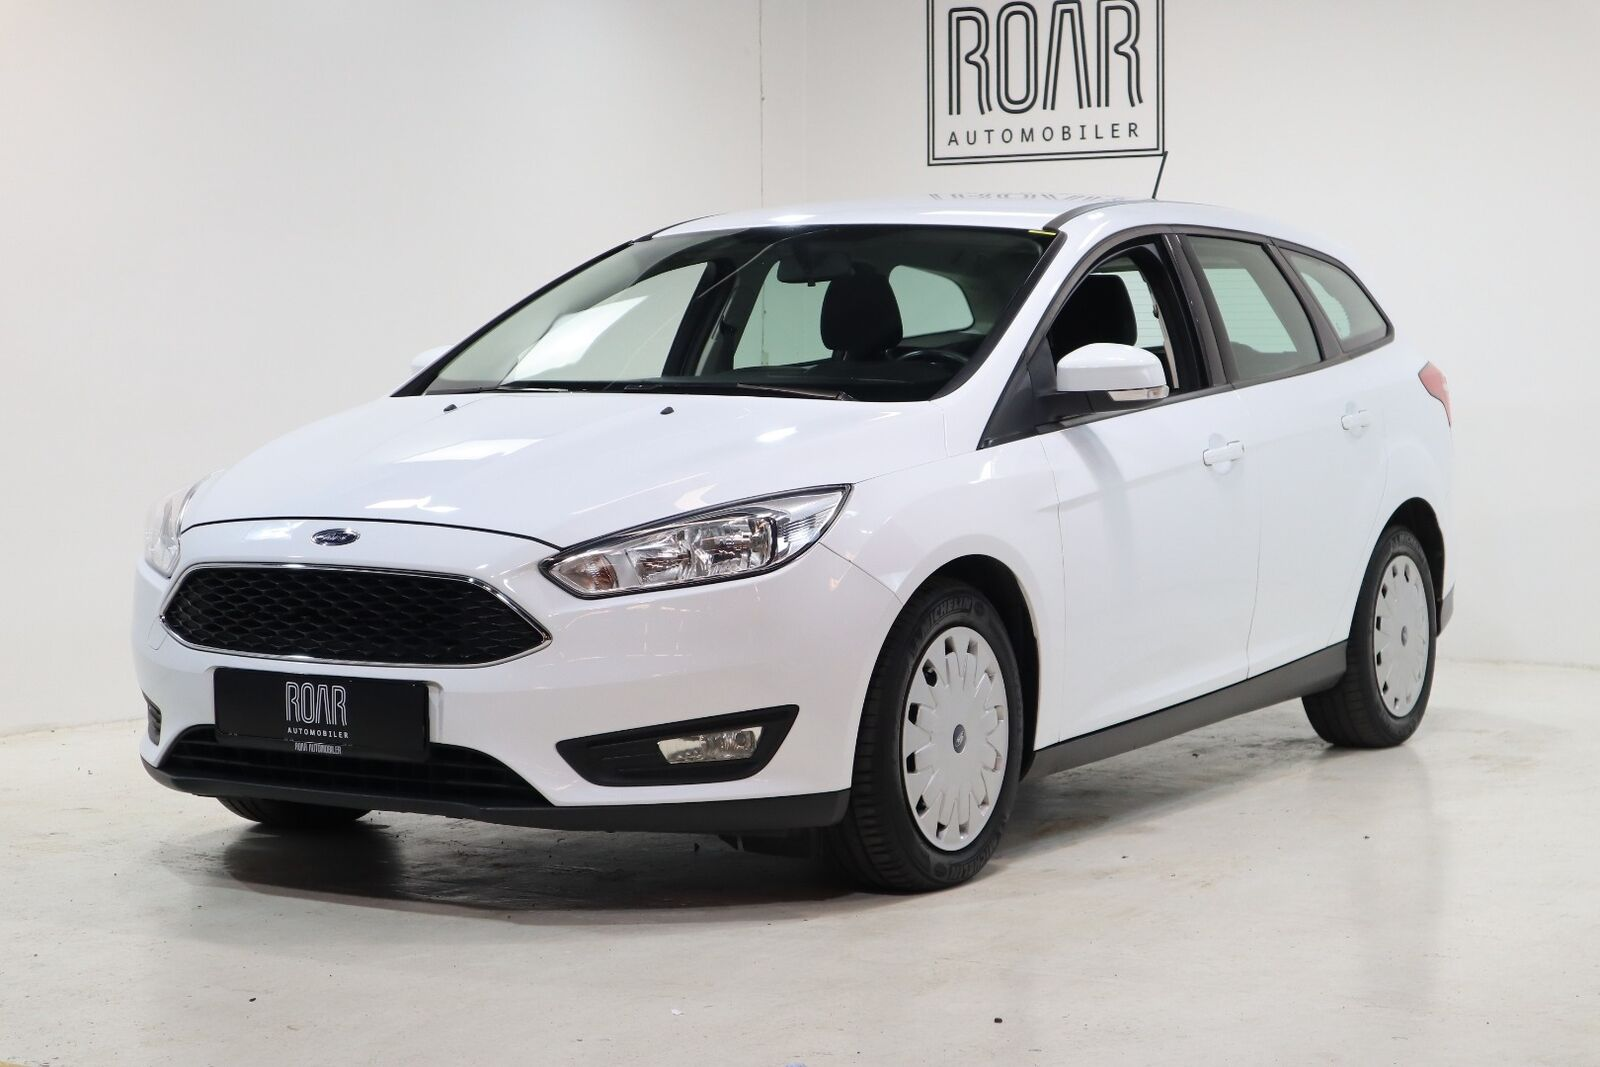 Ford Focus 1,5 TDCi 105 Business stc. ECO 5d - 139.900 kr.